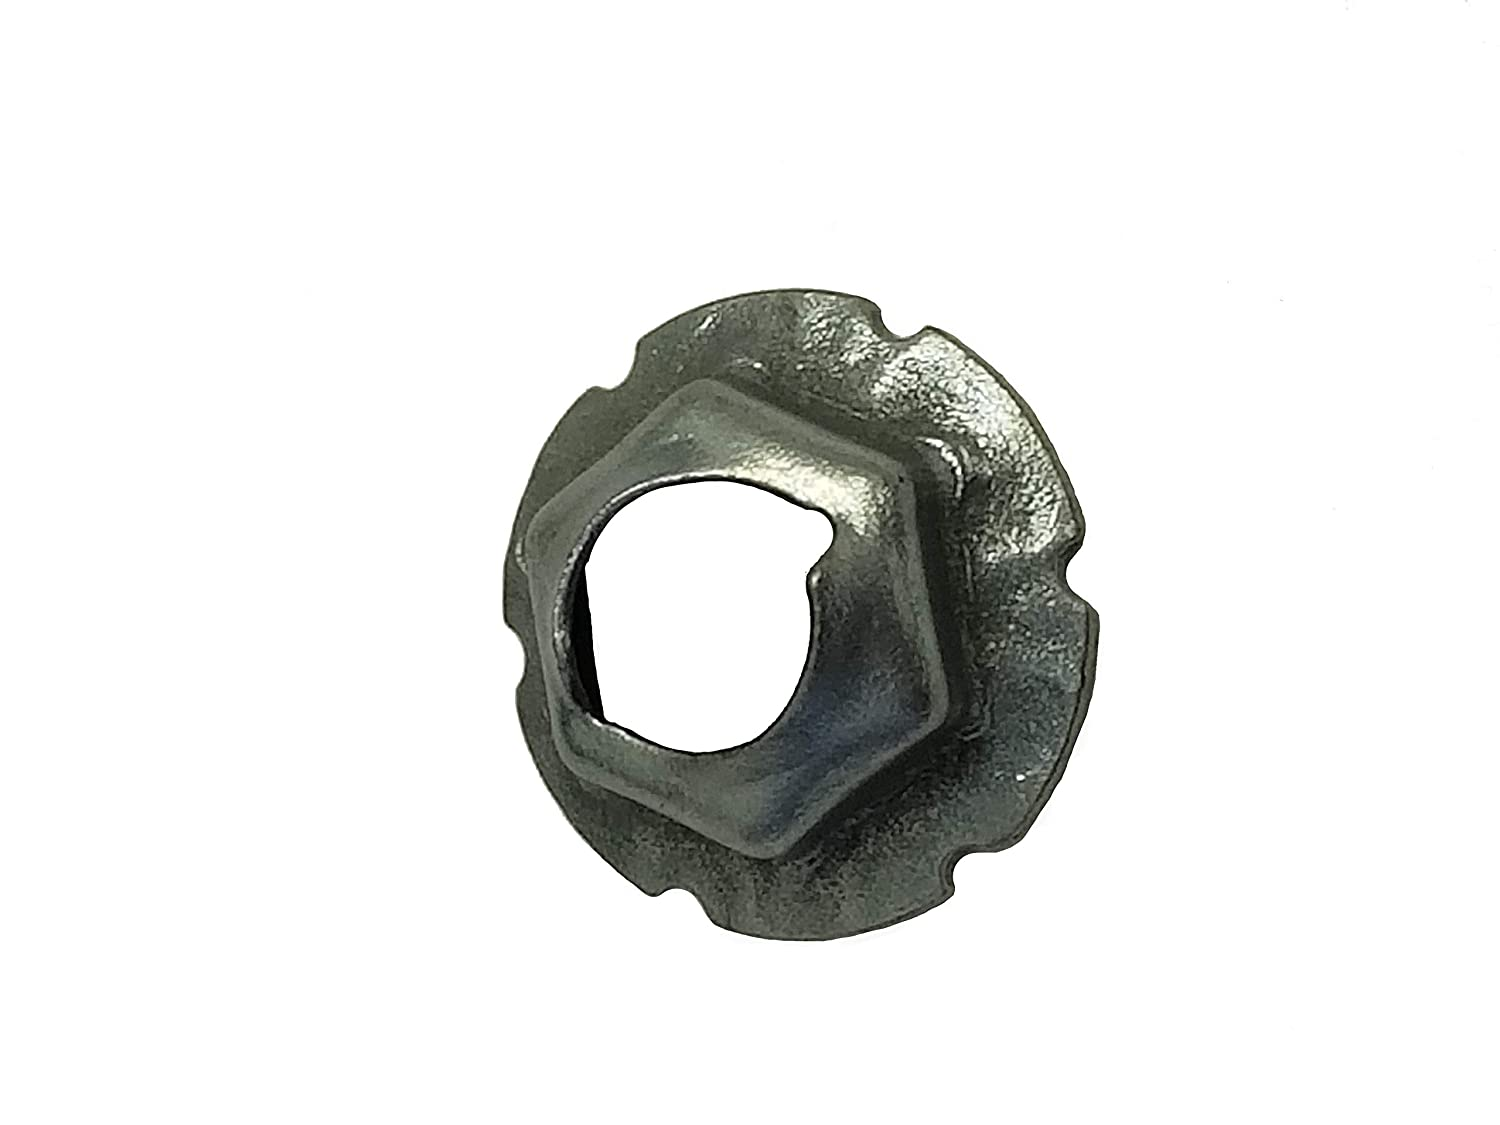 John Deere Original Equipment Push Nut #H141123